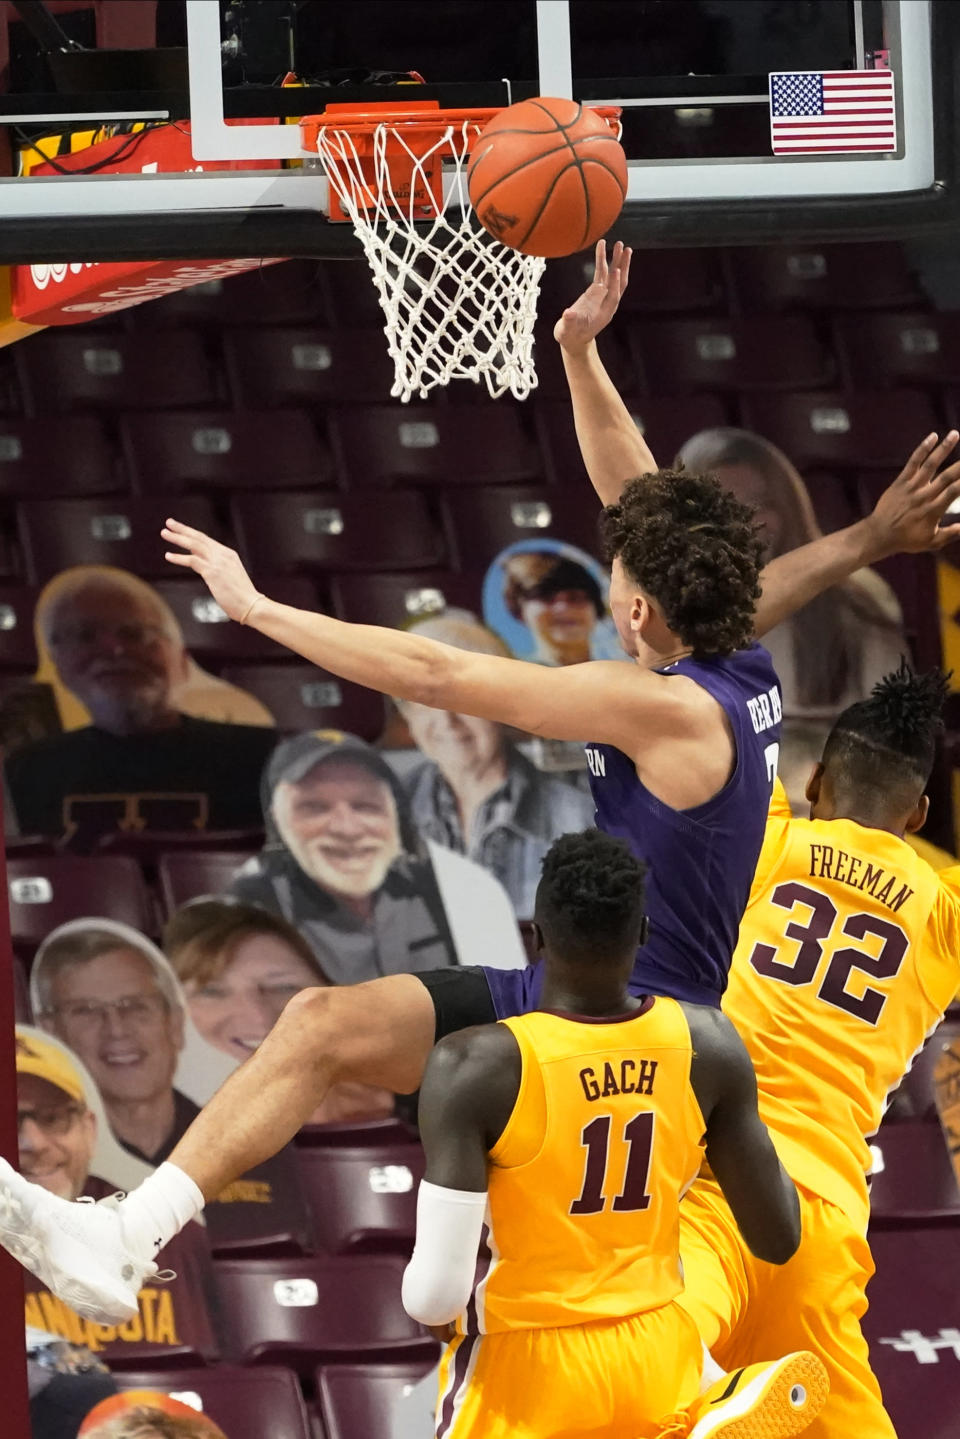 Northwestern's Ty Berry, center, lays up a shot between Minnesota's Both Gach (11) and Sam Freeman (32) in the first half of an NCAA college basketball game, Thursday, Feb. 25, 2021, in Minneapolis. (AP Photo/Jim Mone)